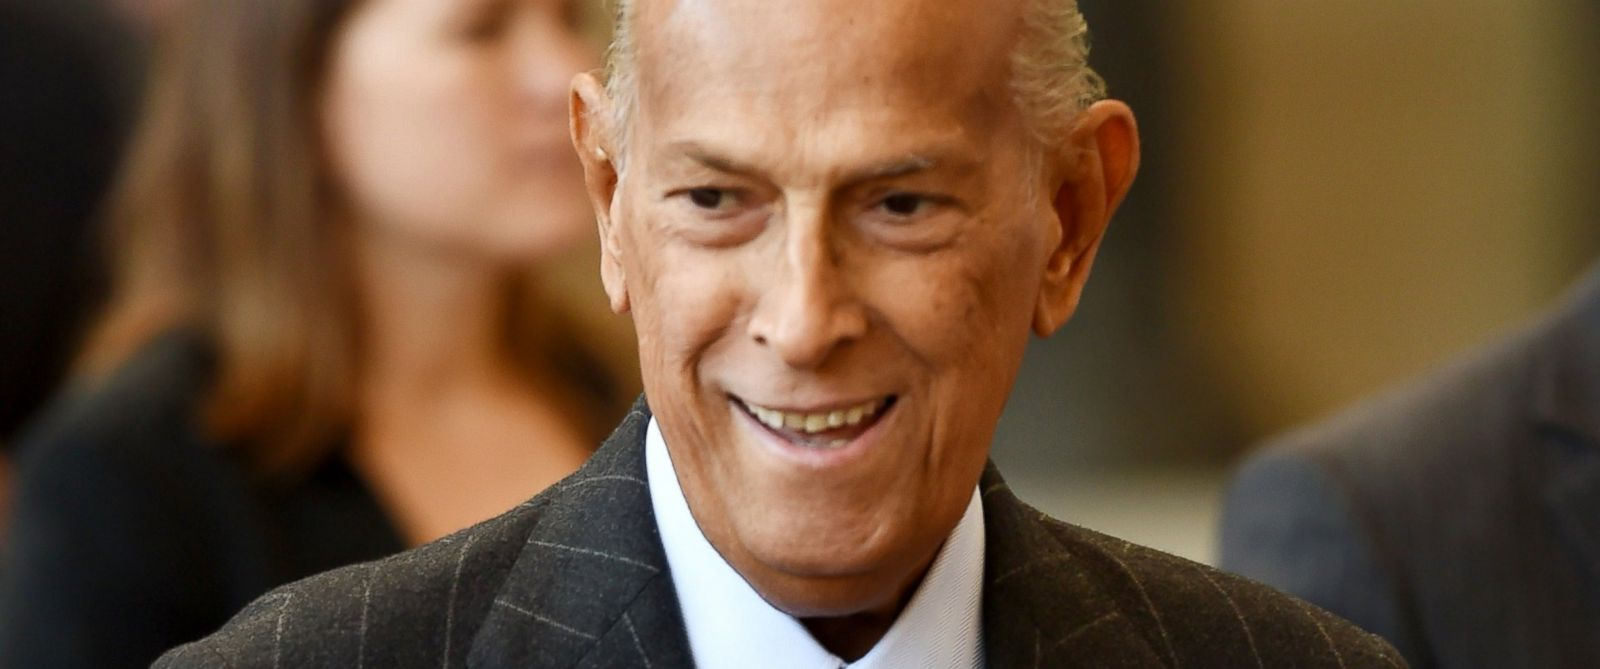 PHOTO: Fashion designer Oscar de la Renta attends the official opening of The Costume Institutes new Anna Wintour Costume Center at The Metropolitan Museum of Art, May 5, 2014, in New York.